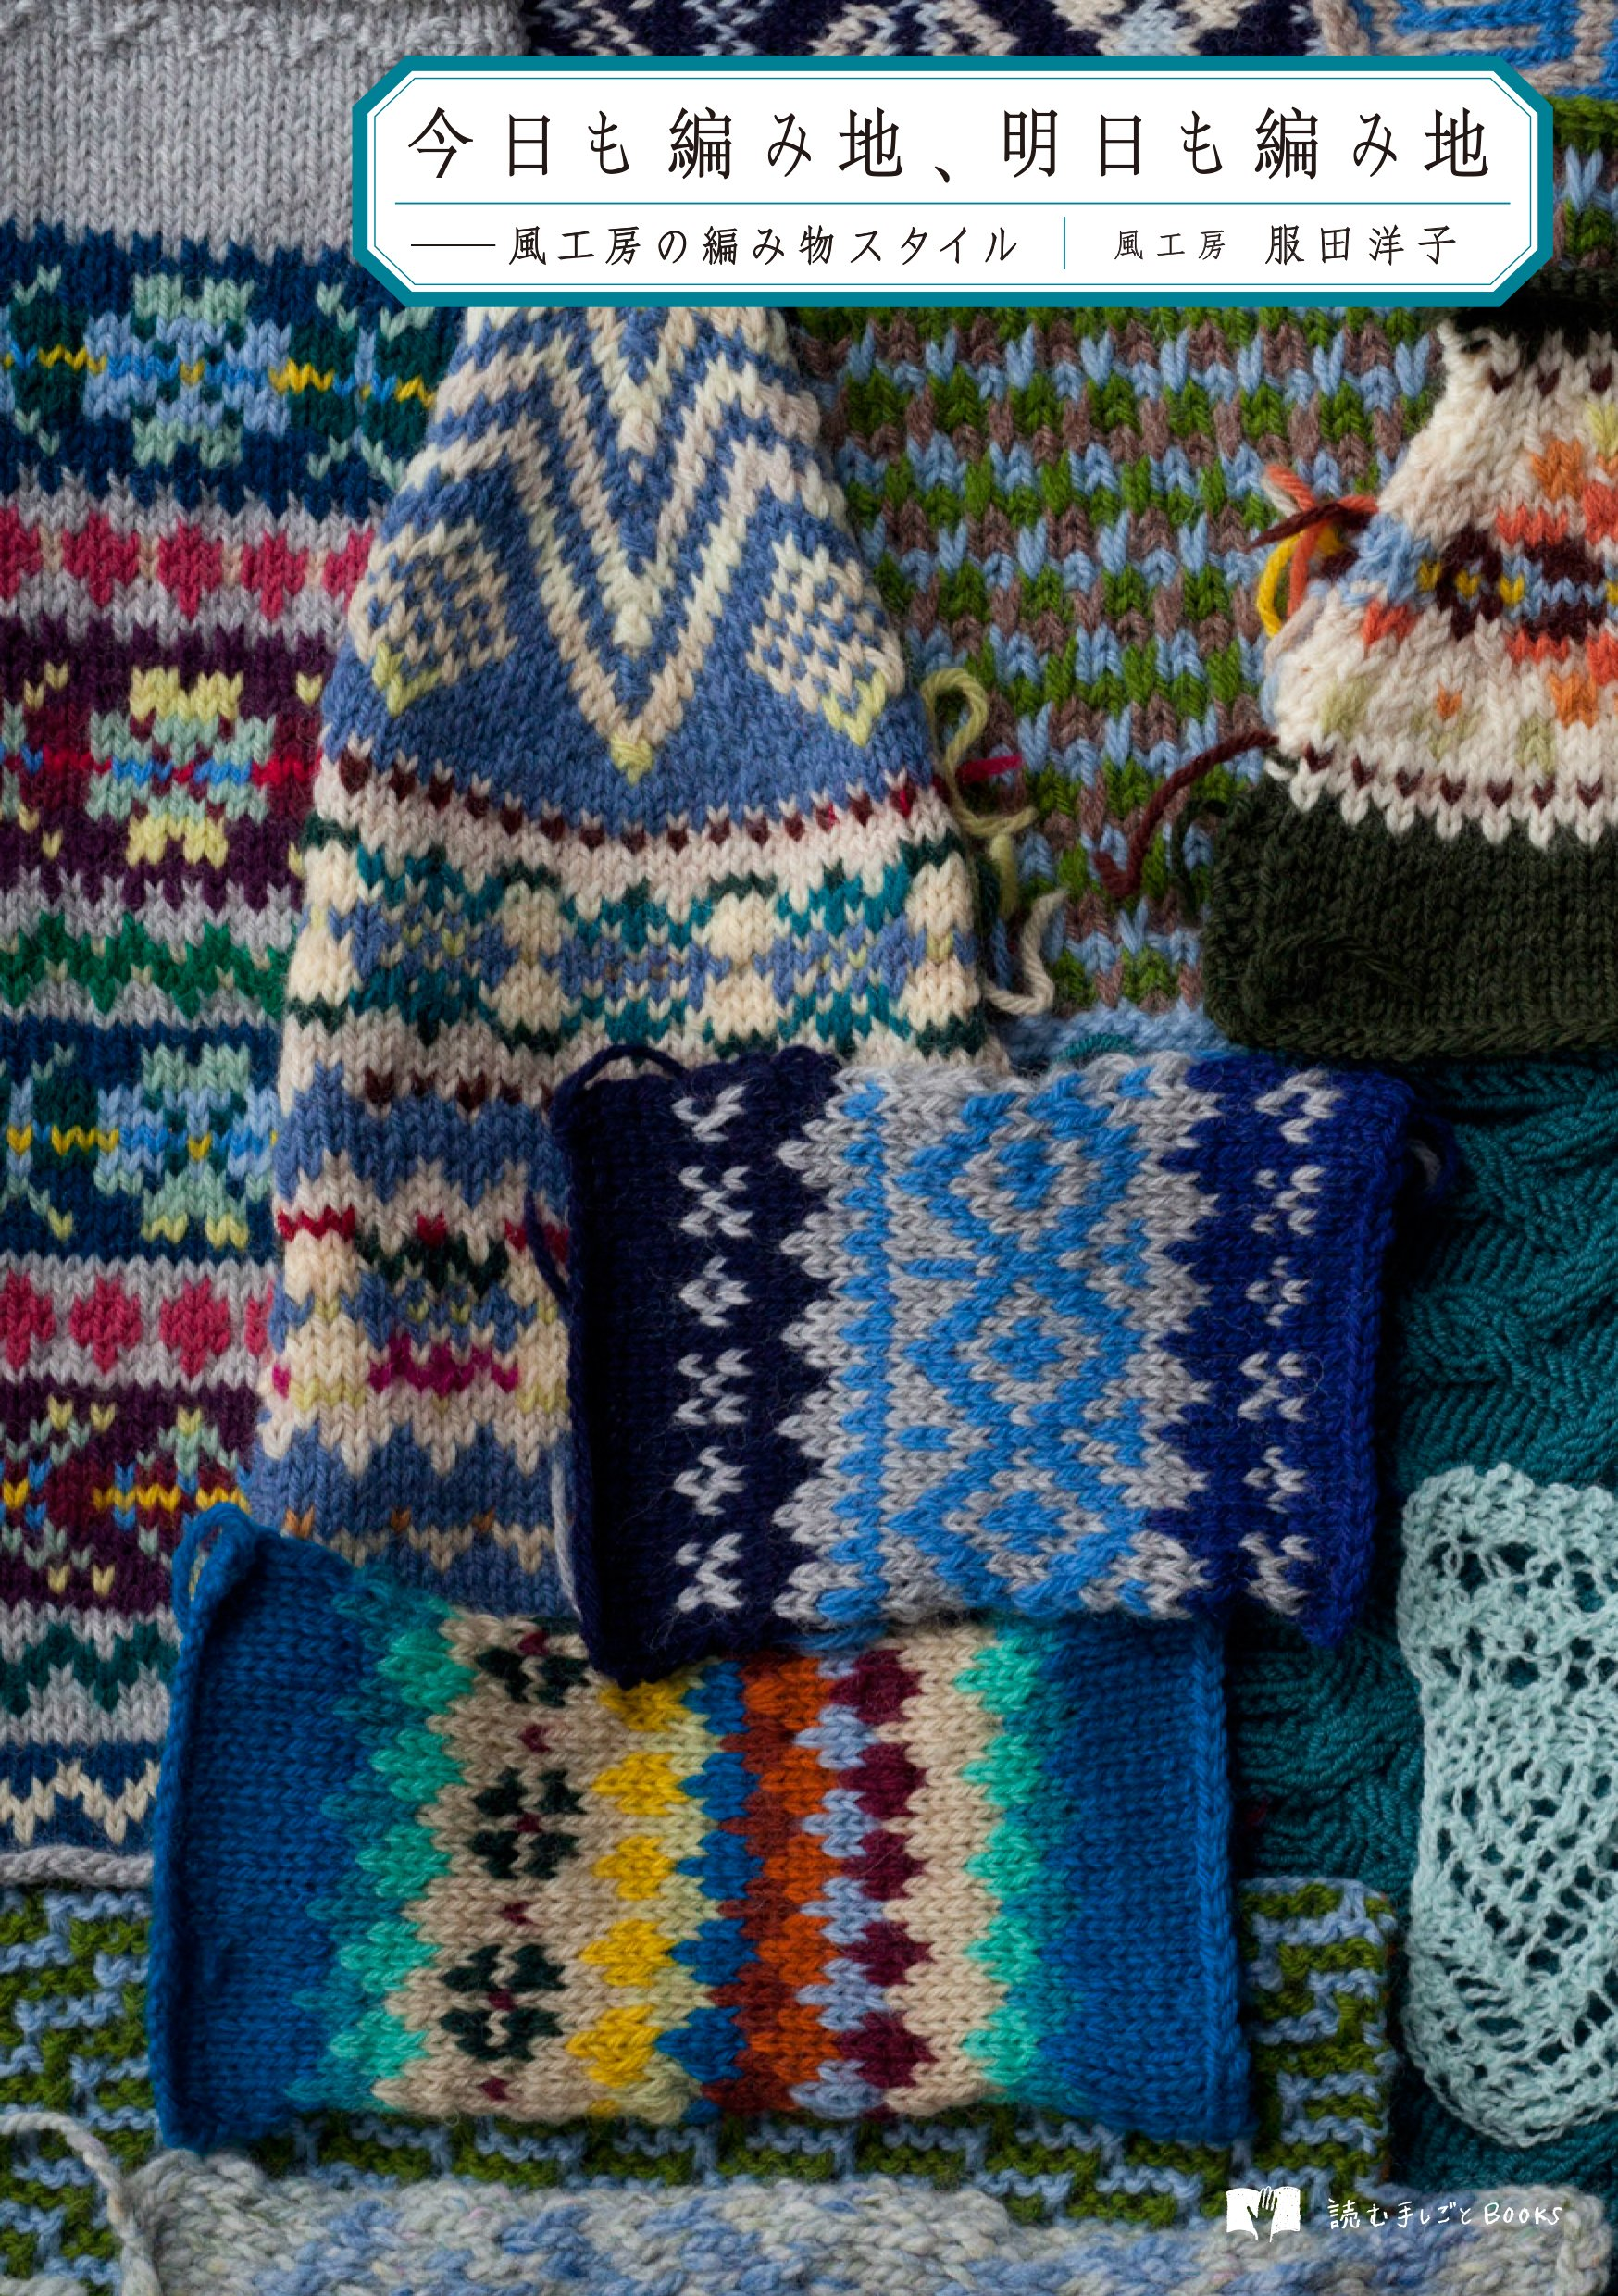 Today also knit, knitting style